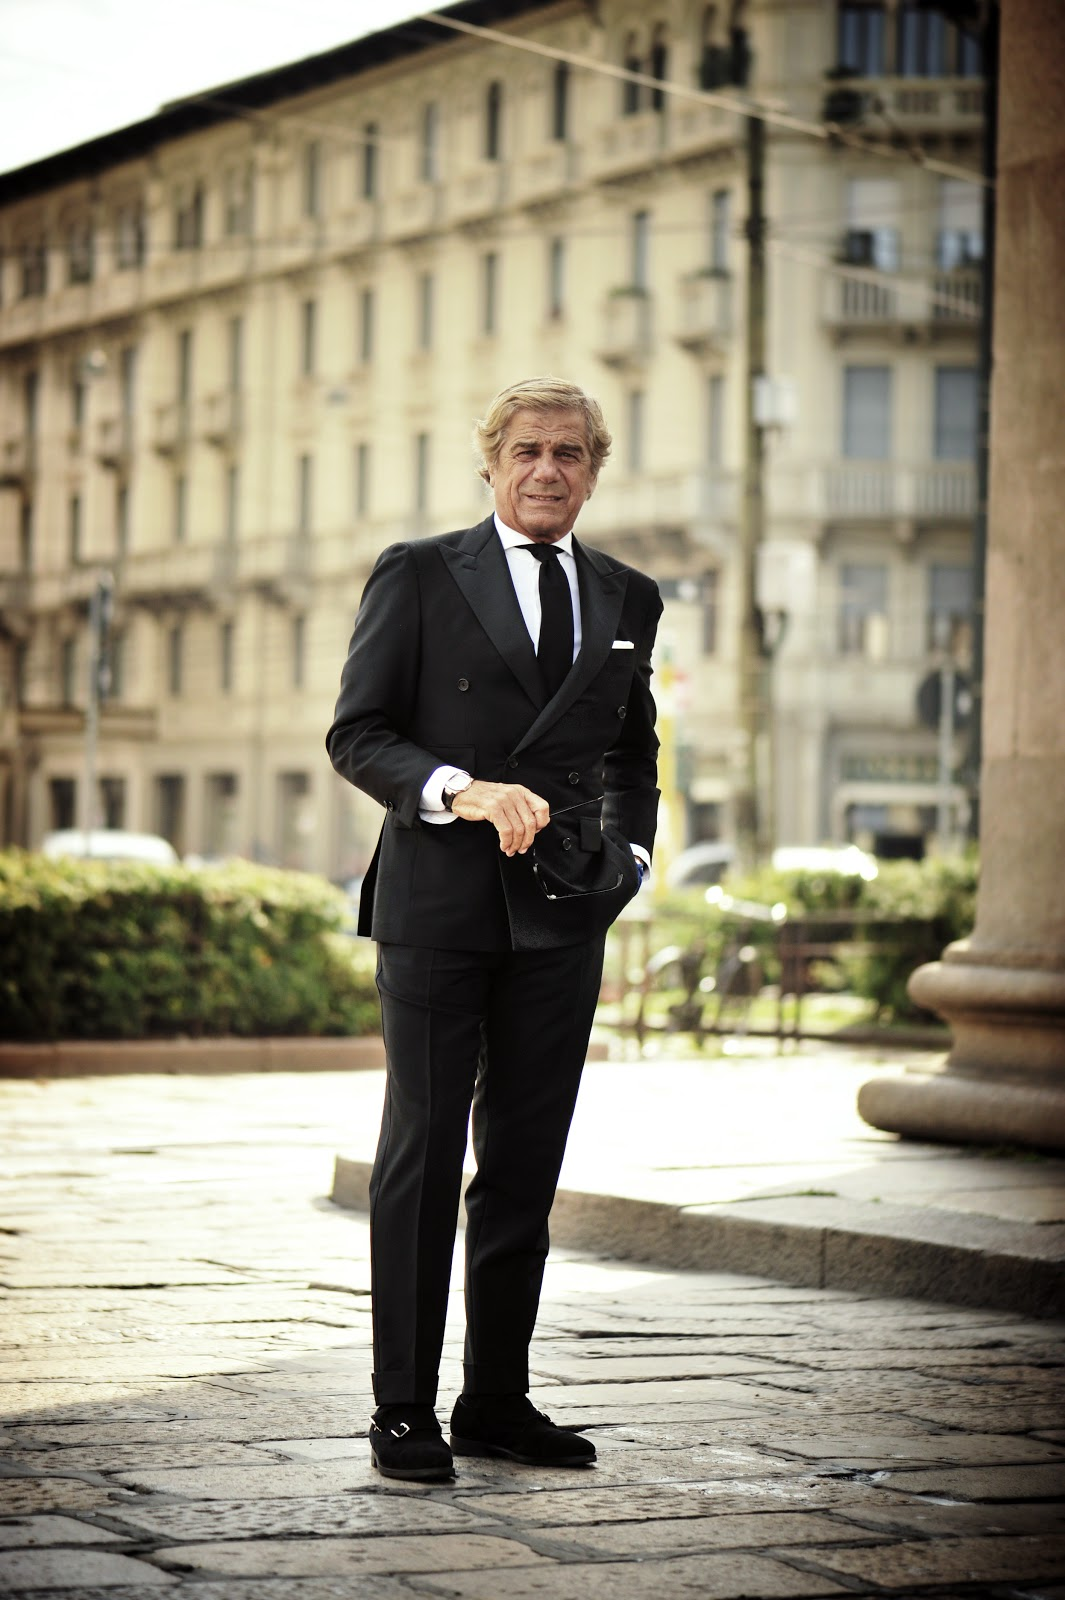 lino-ieluzzi-black-suit-lookbook-streetstyle-men-fashion-icon